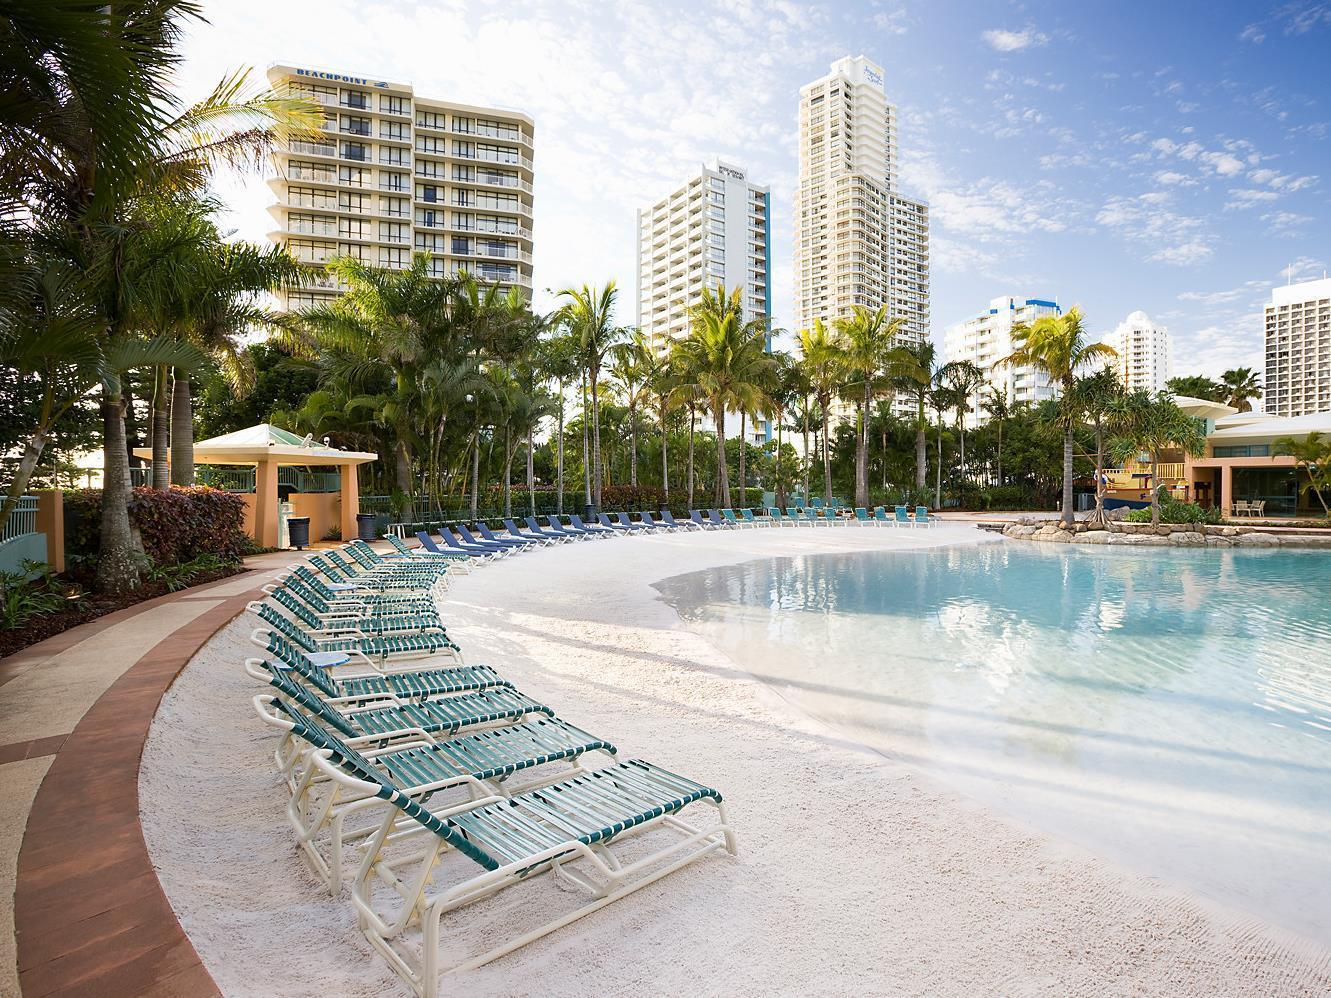 Mantra Crown Towers Resort Apartments Reviews